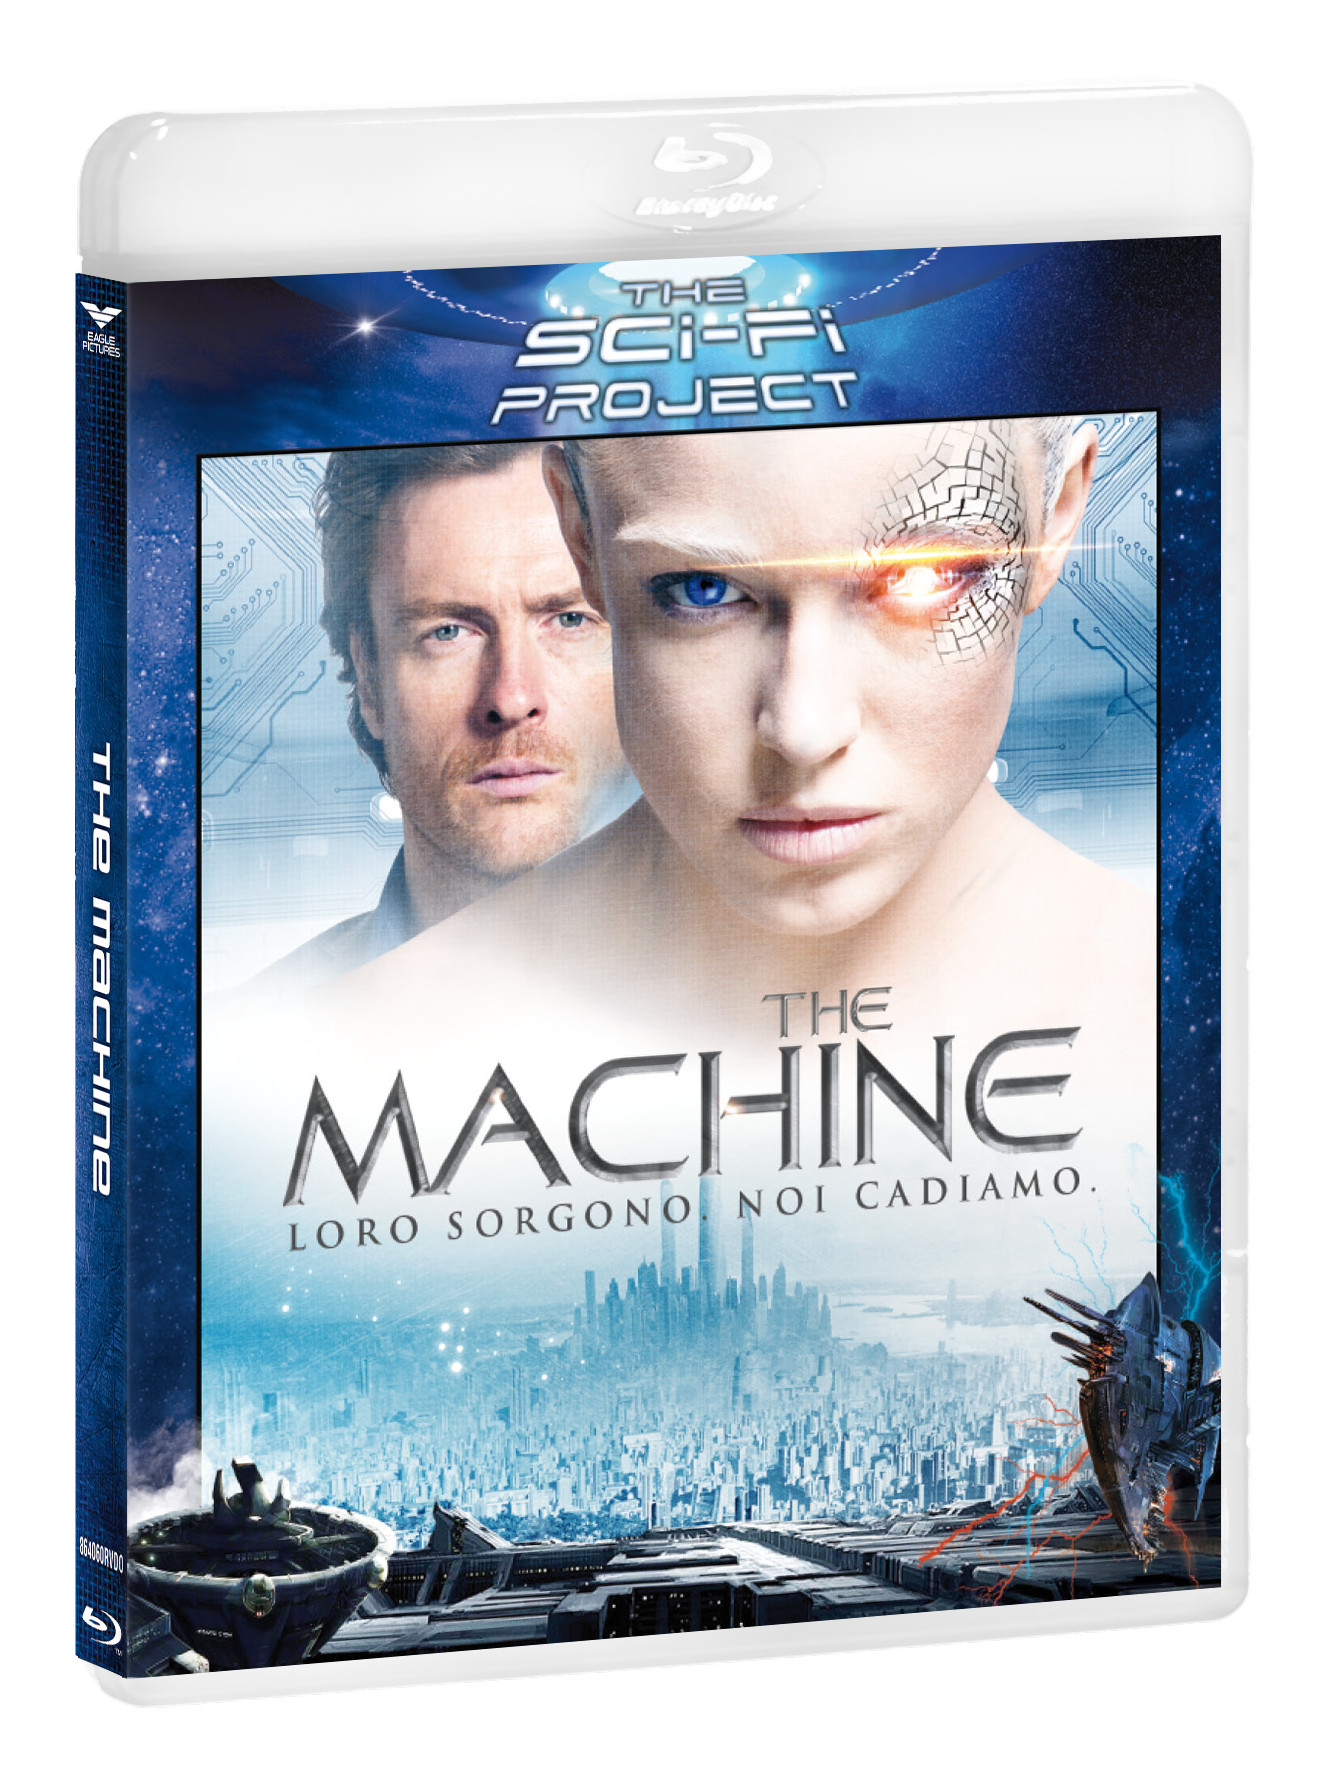 THE MACHINE (SCI-FI PROJECT) - BLU RAY